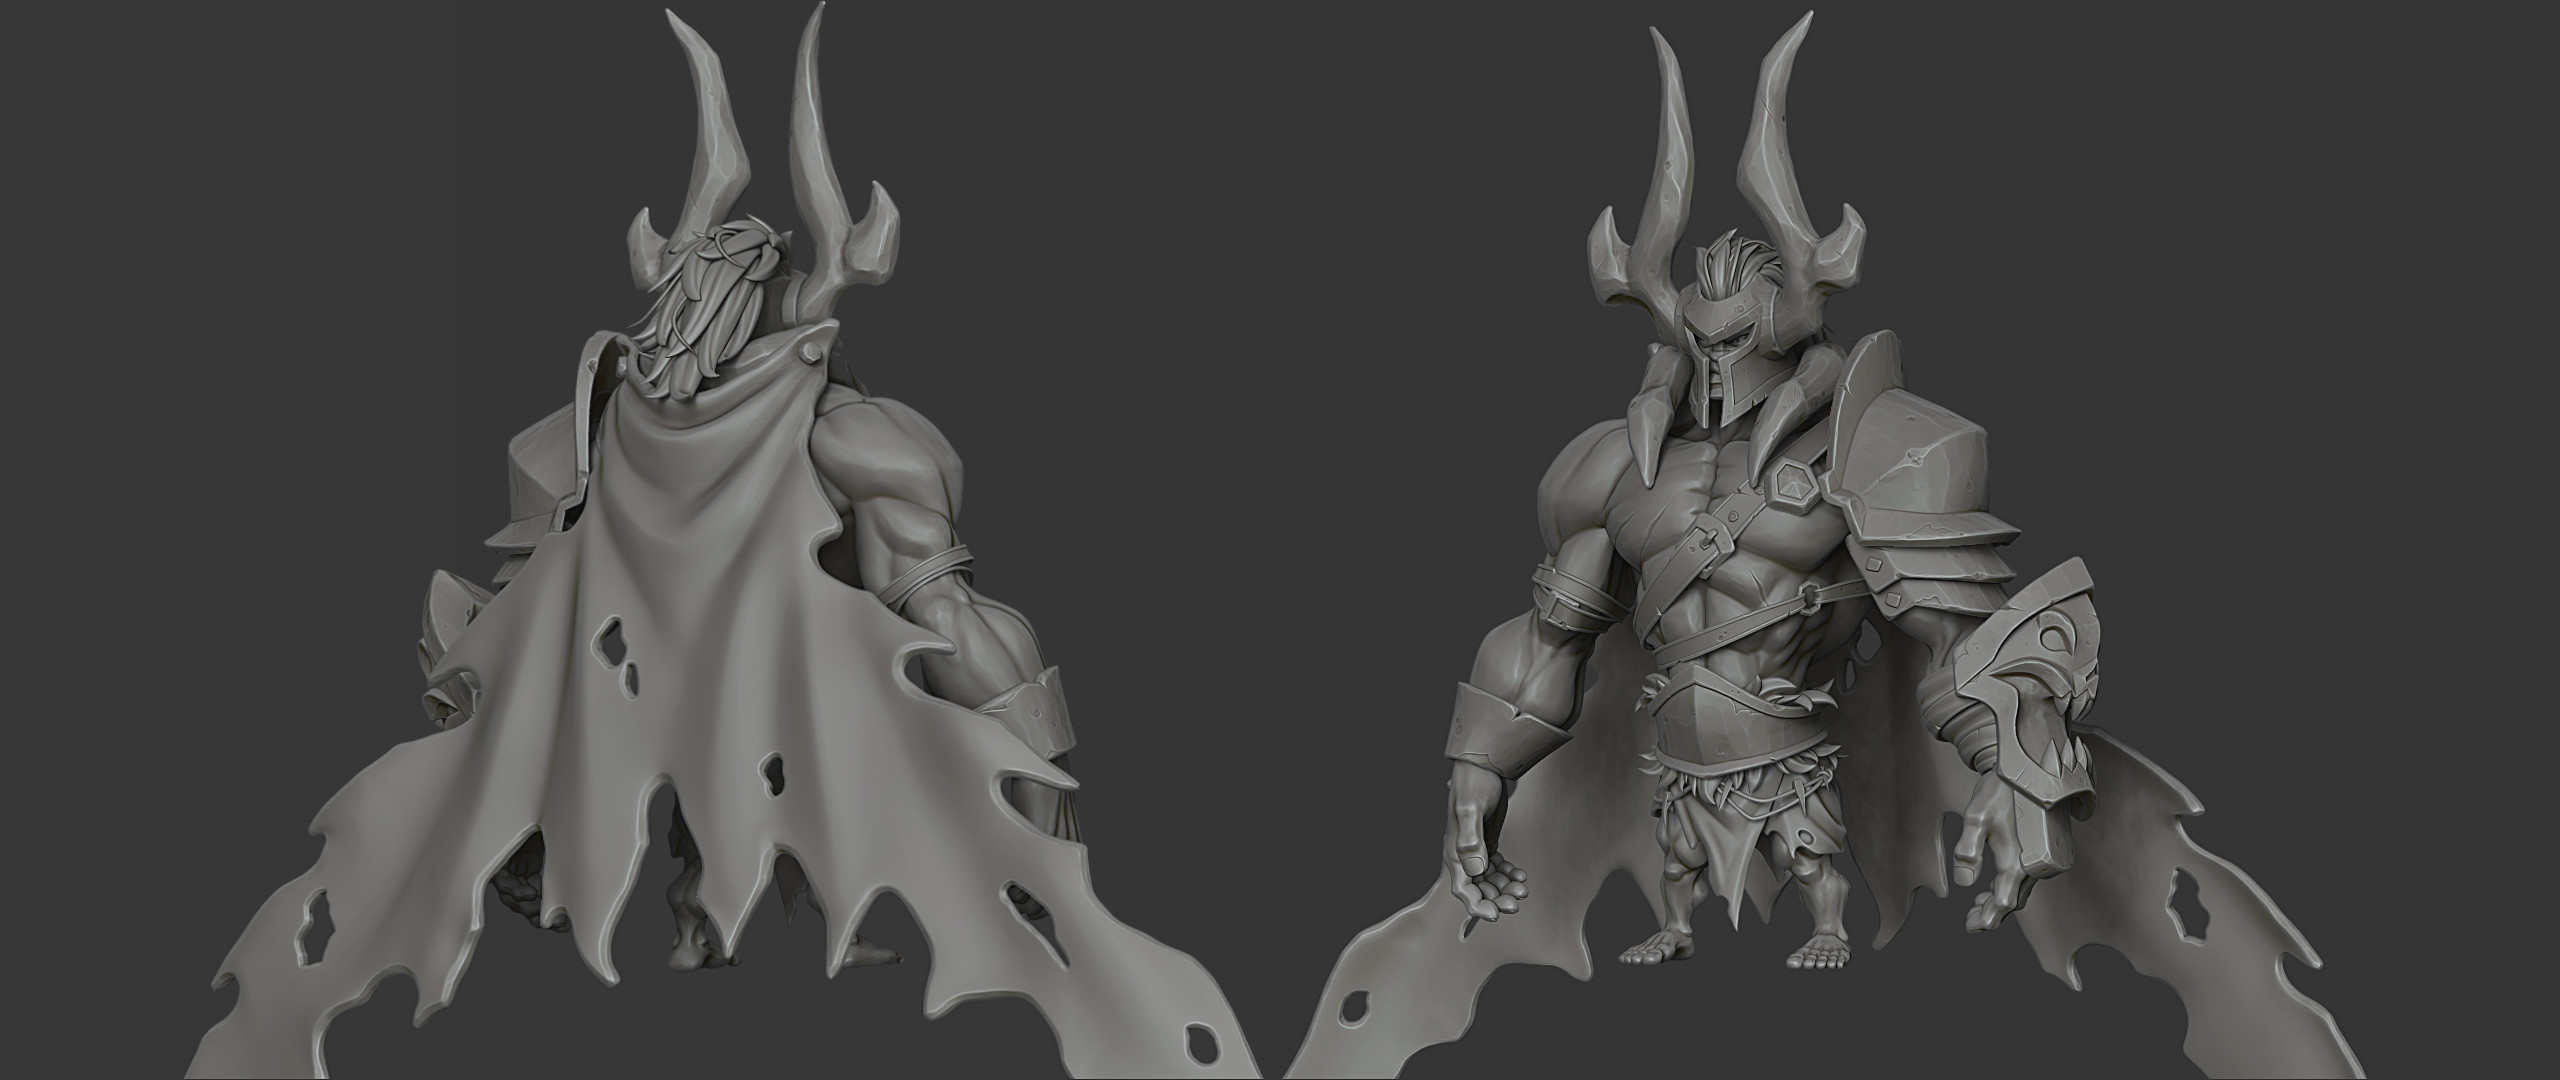 Character Highpoly (Zbrush Render)